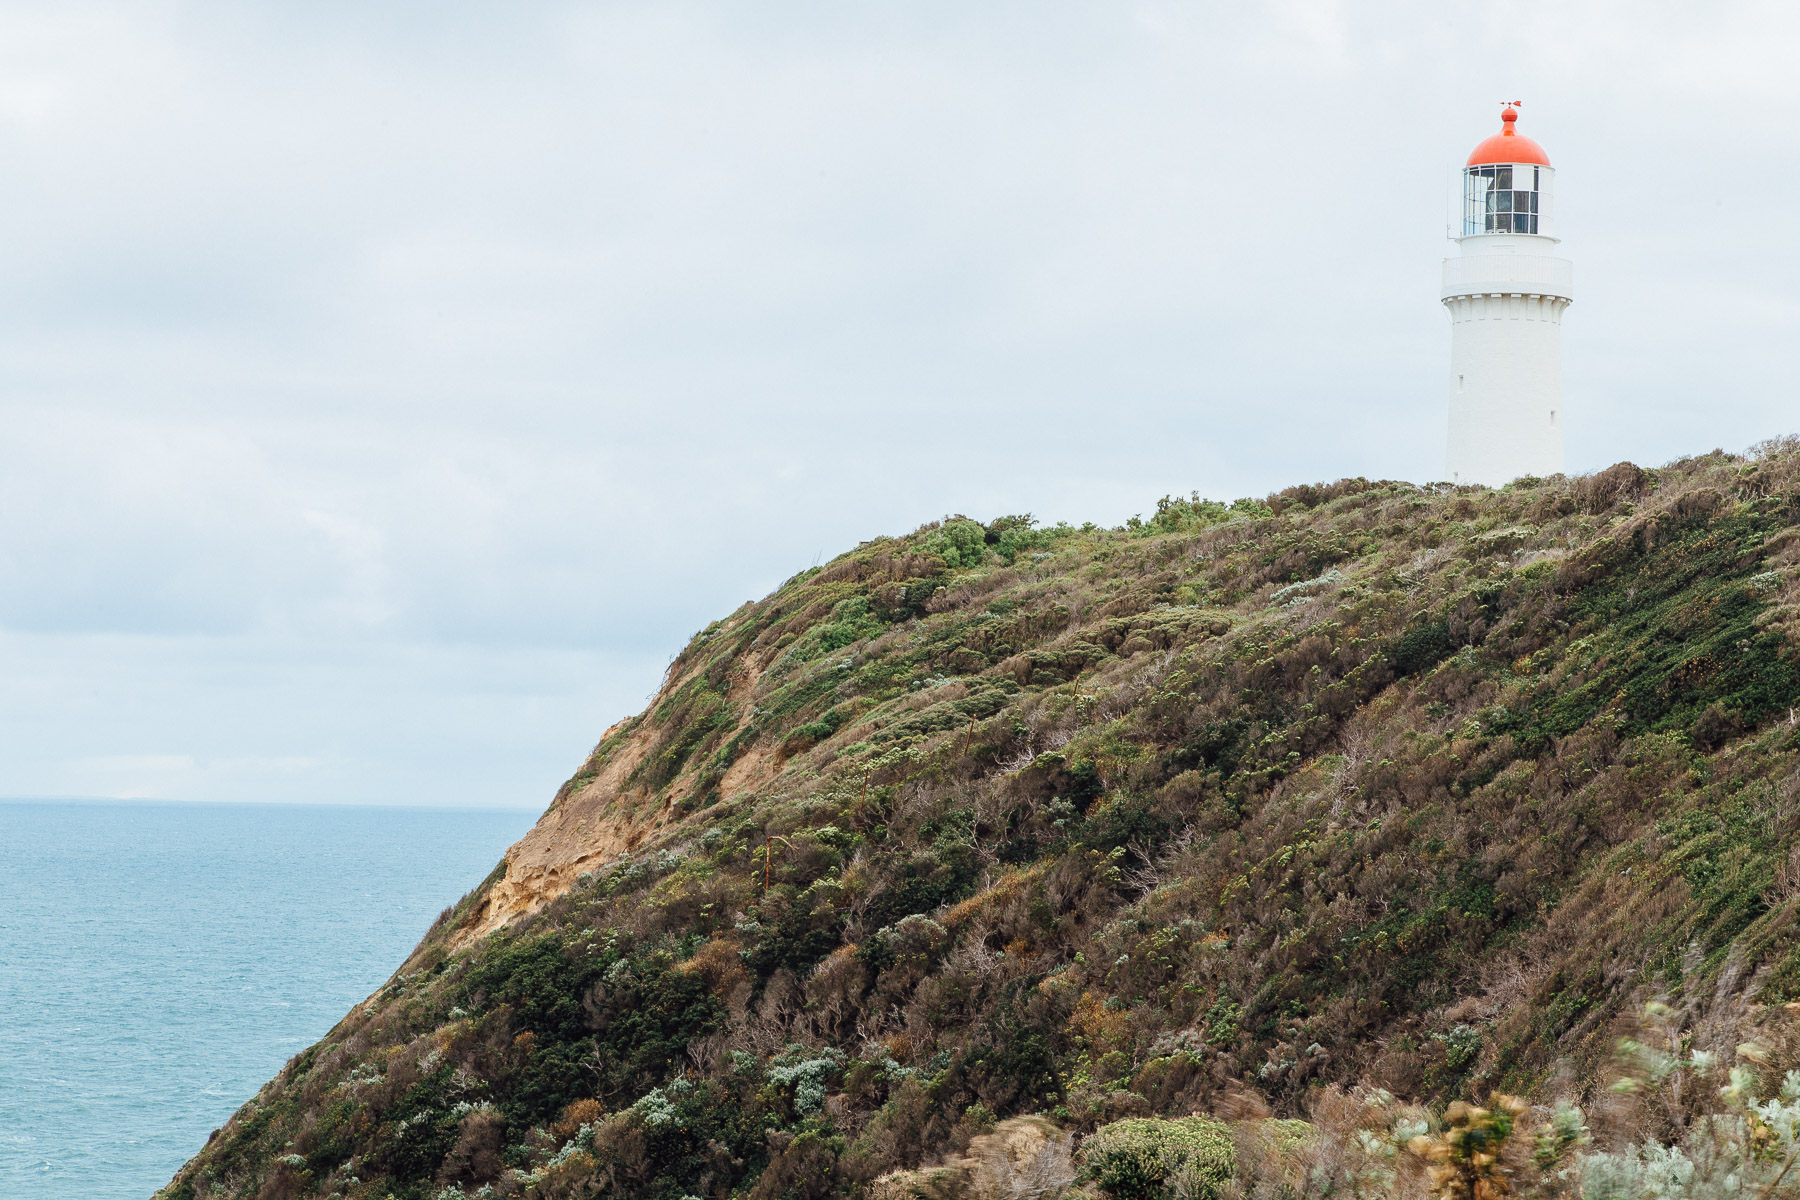 The dramatic coastline around Cape Schanck and its distinctive lighthouse  is popular with hikers and nature lovers for its flora and fauna, including albatrosses; and if it's kangaroos you're keen to see, try further east along the walk to Bushrangers Bay.